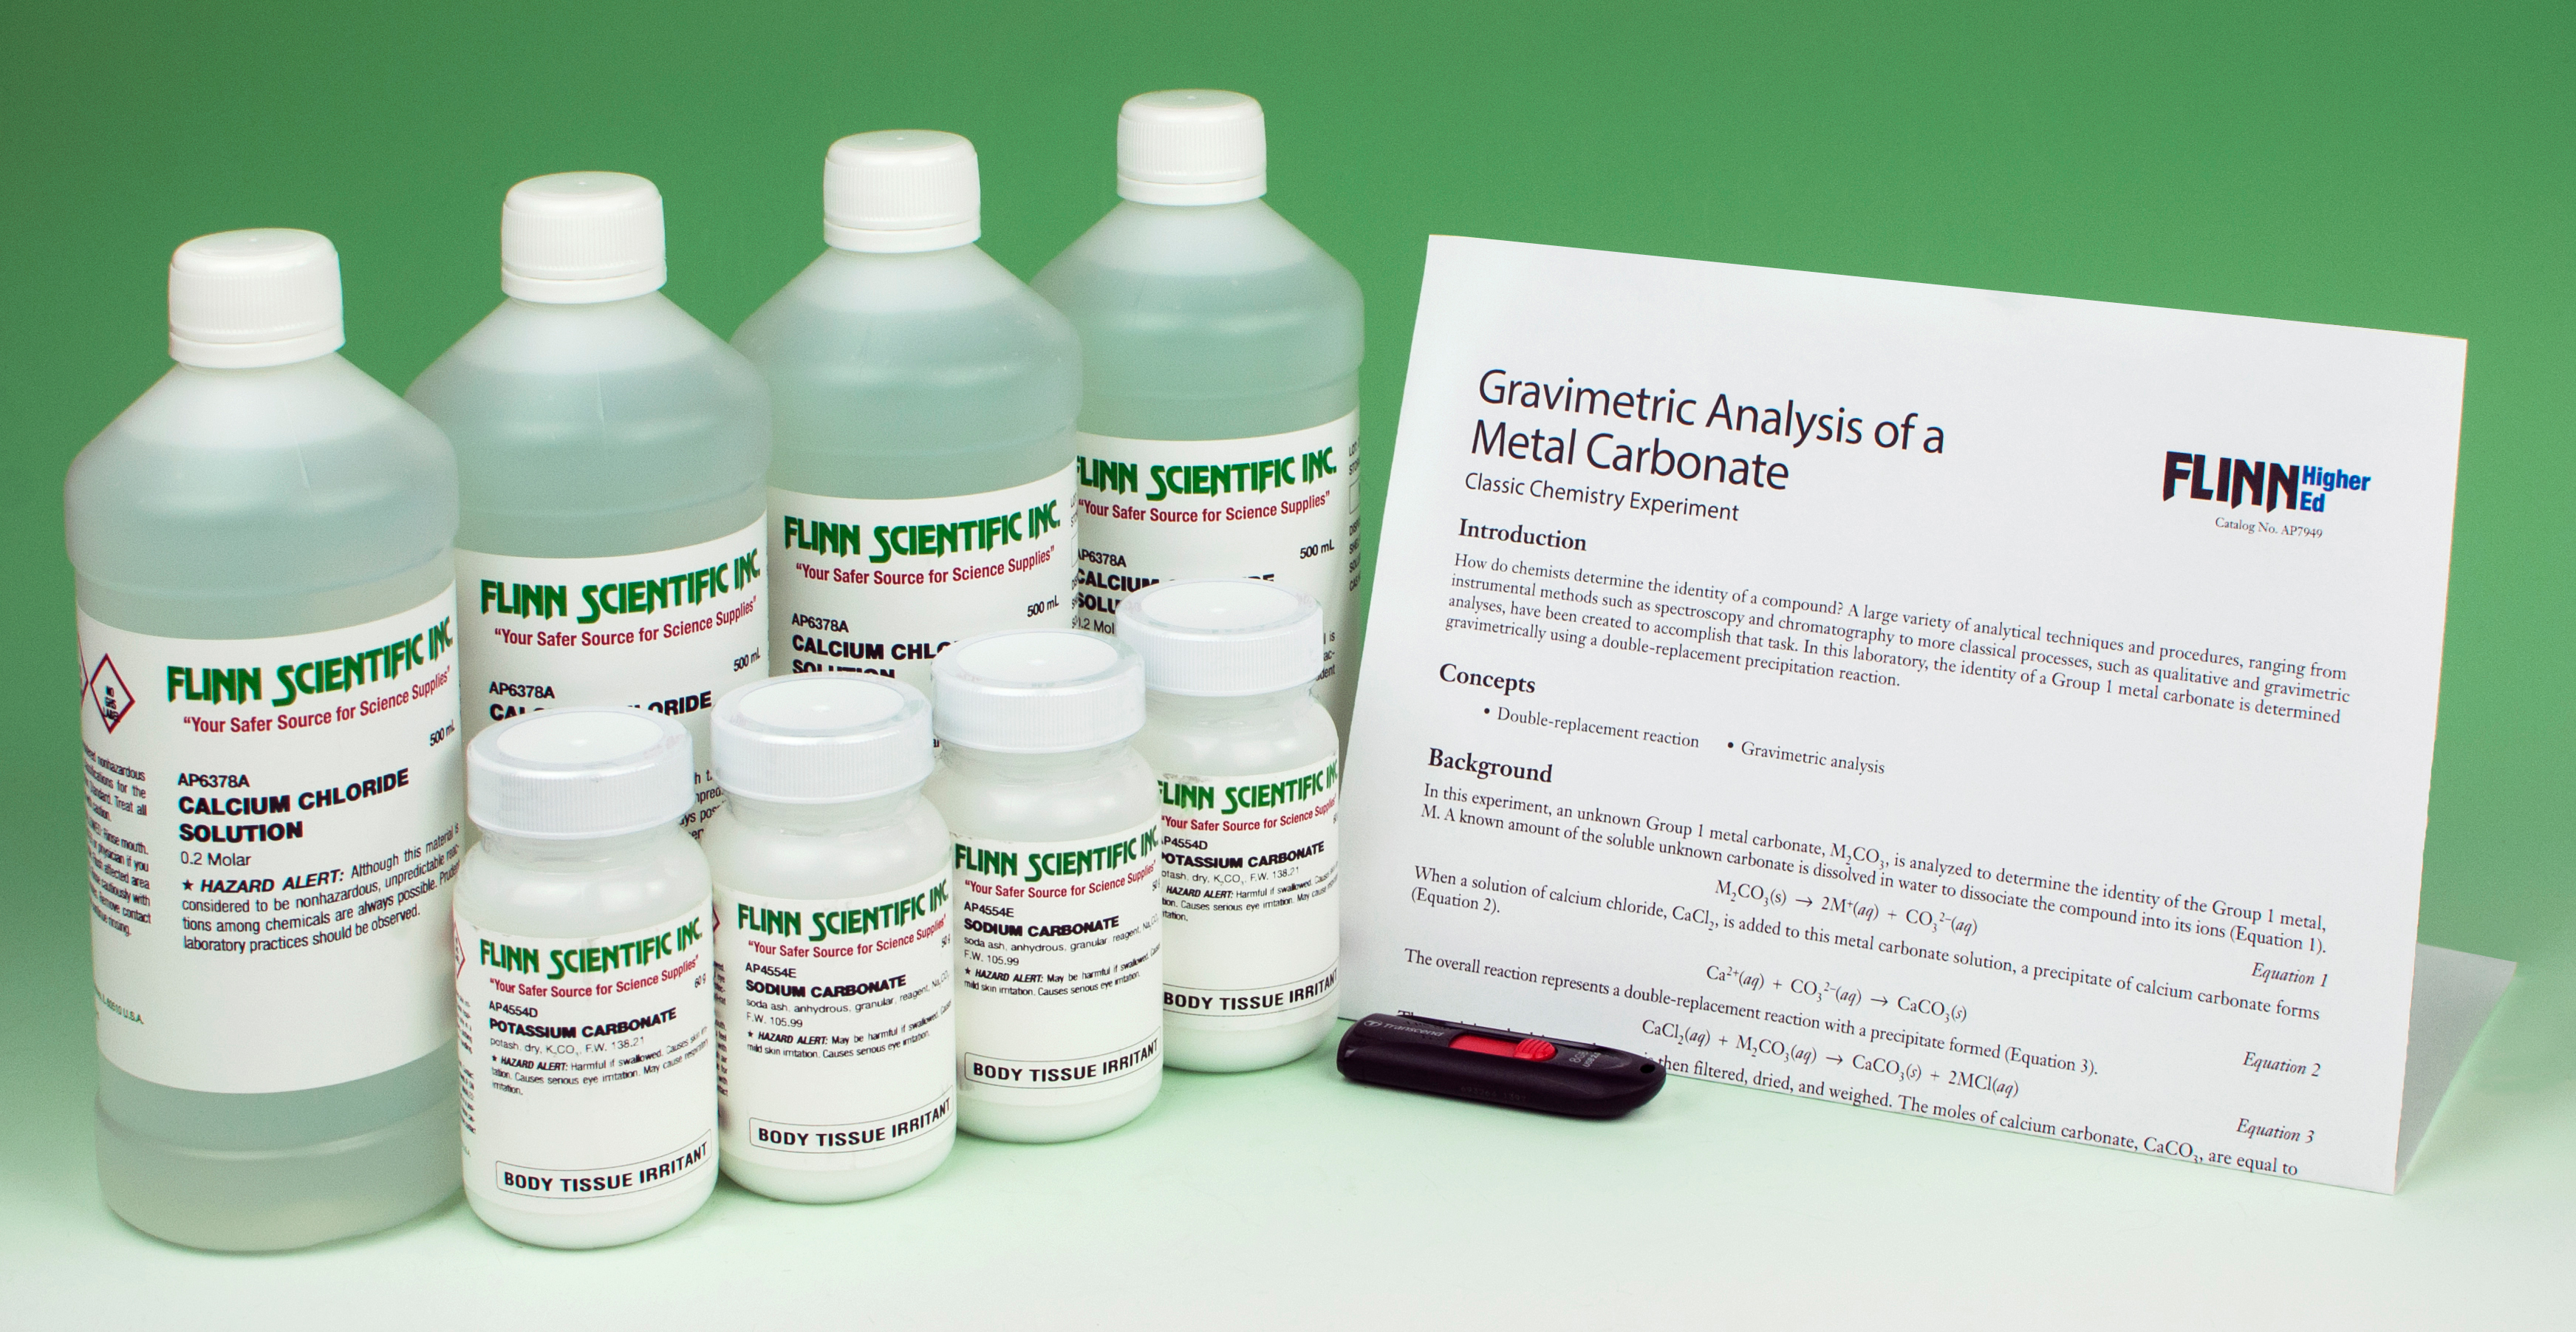 gravimetric analysis of a metal carbonate Gravimetric analysis of a metal carbonate materials unknown sample, m2c03, 2 g calcium chloride solution, cac12, 02 m, 125 ml distilled or deionized water, 200 ml.